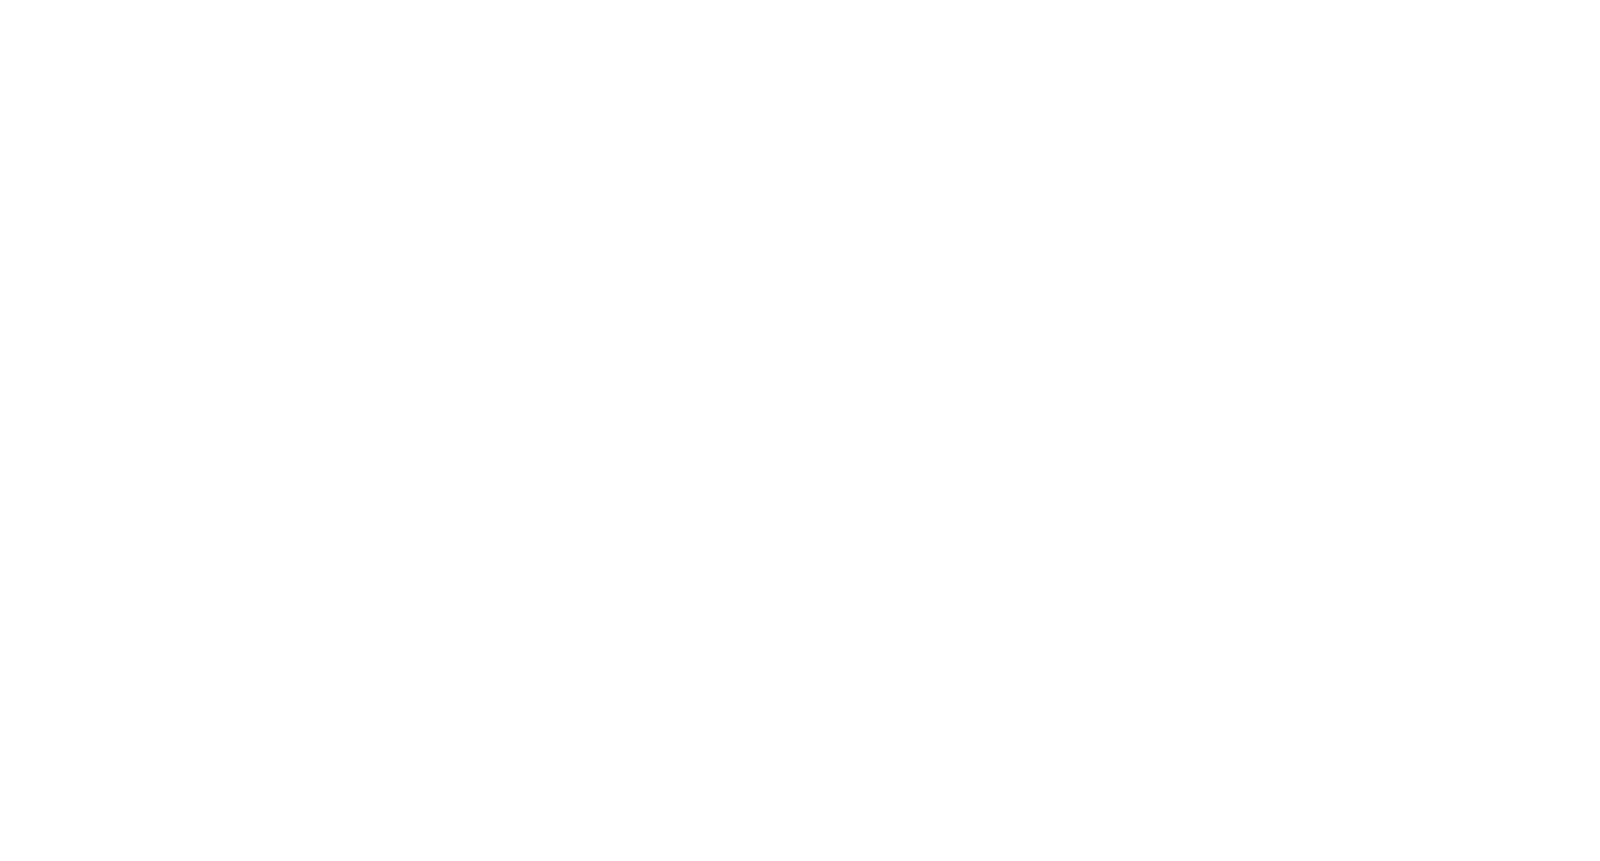 Nike air logo png. Trainers shoes jd sports